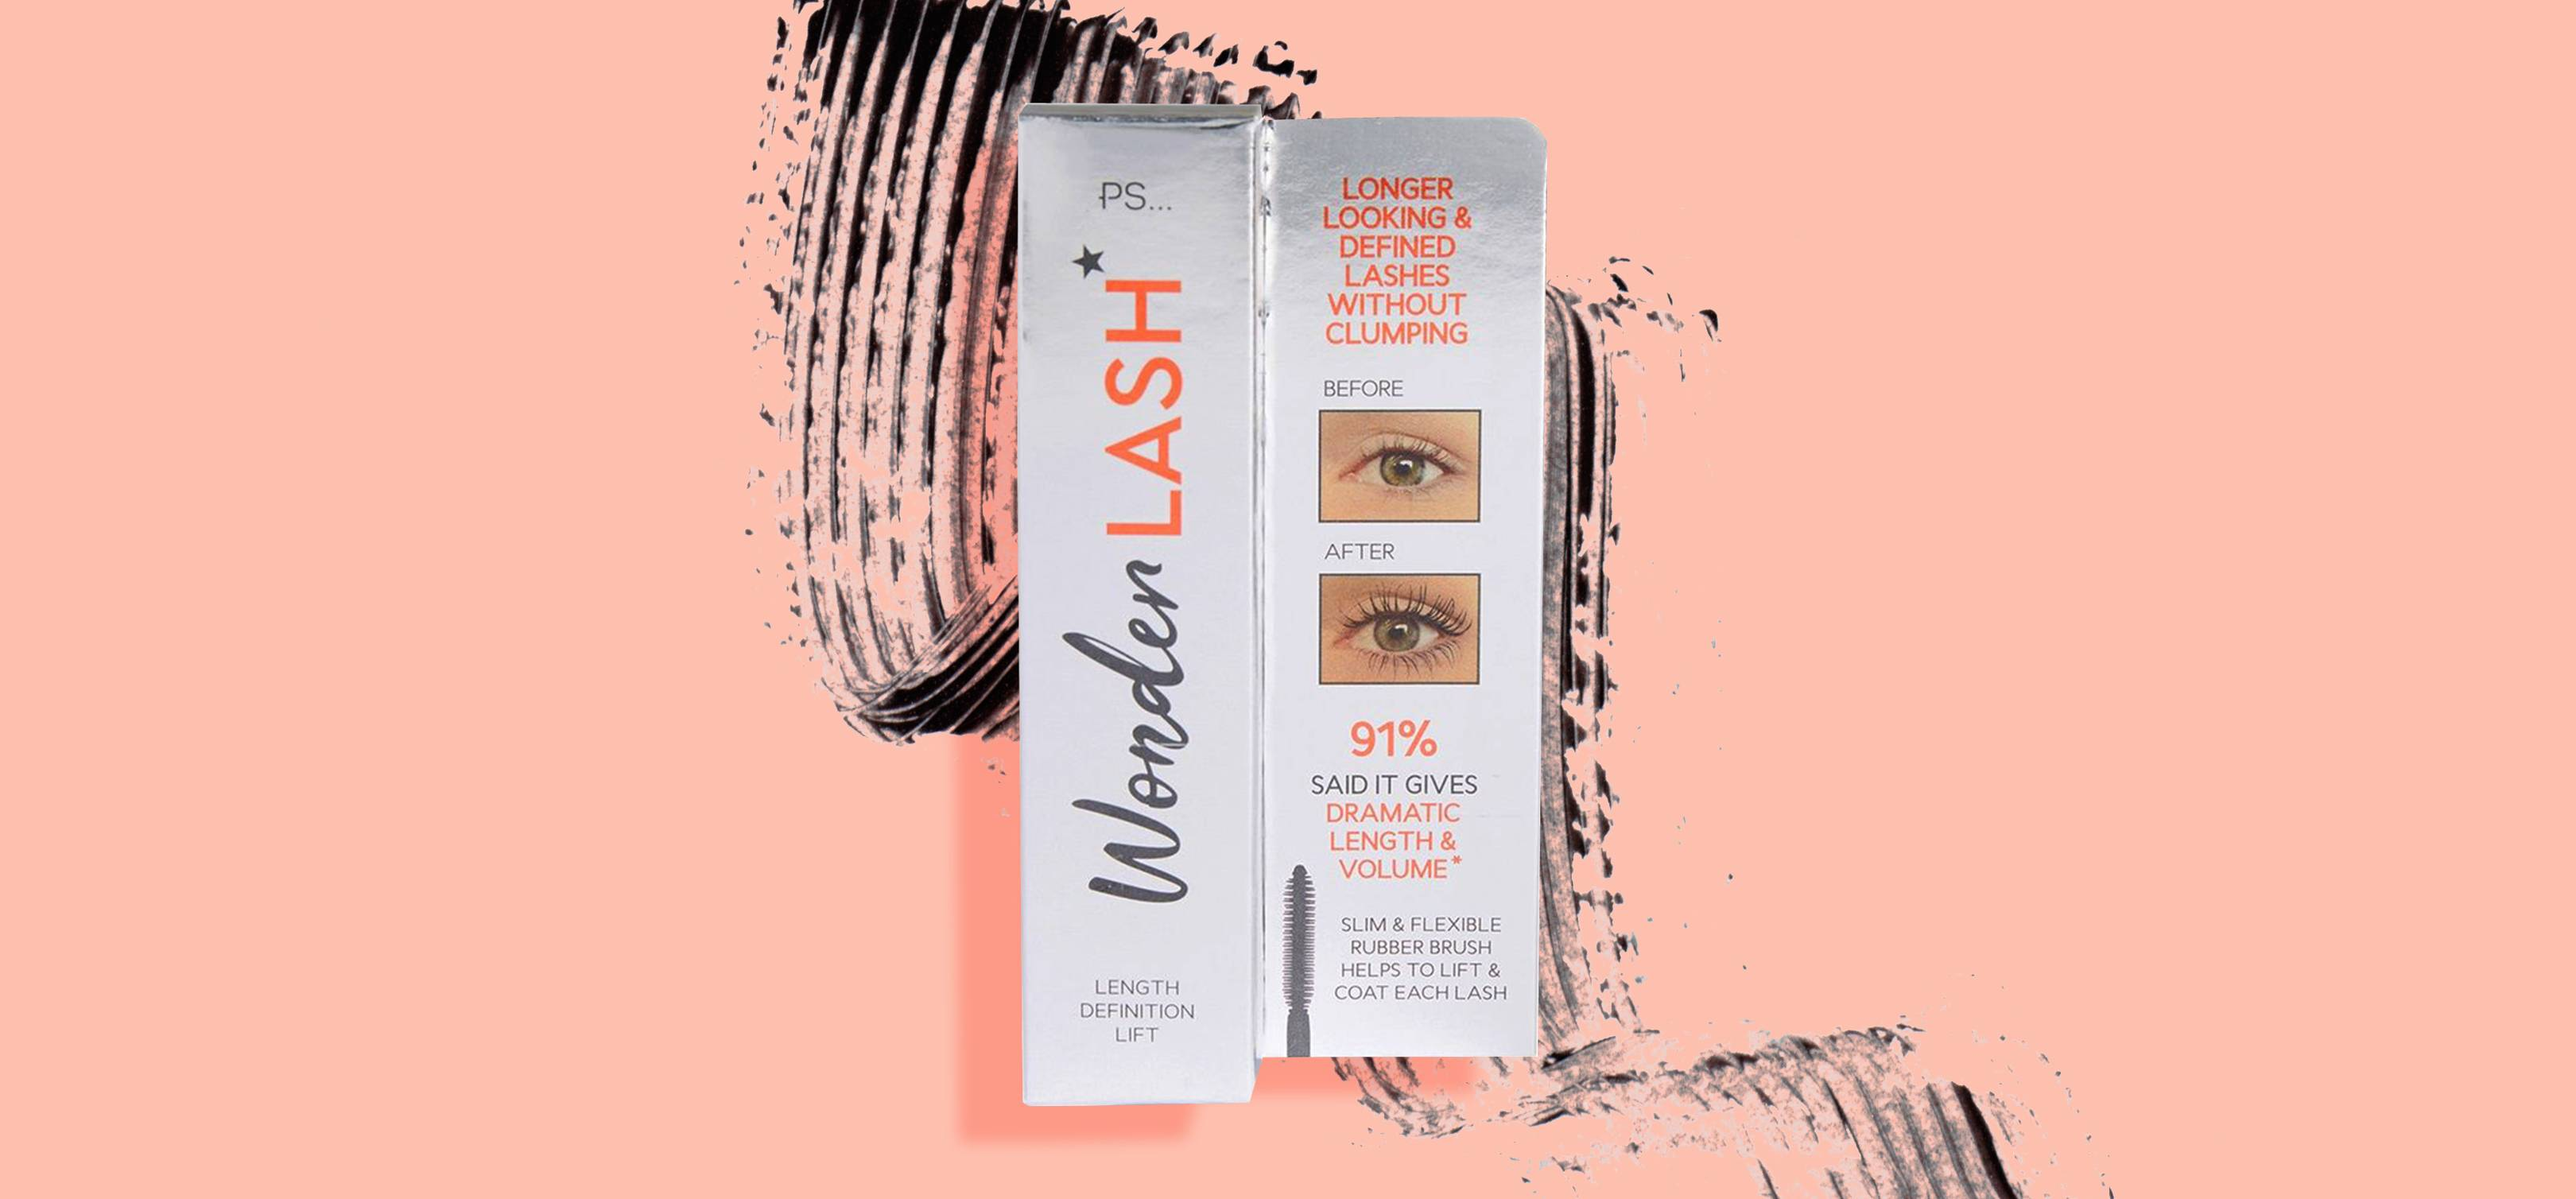 This £3 mascara from Primark has so many good reviews (and it sells every 7 seconds)